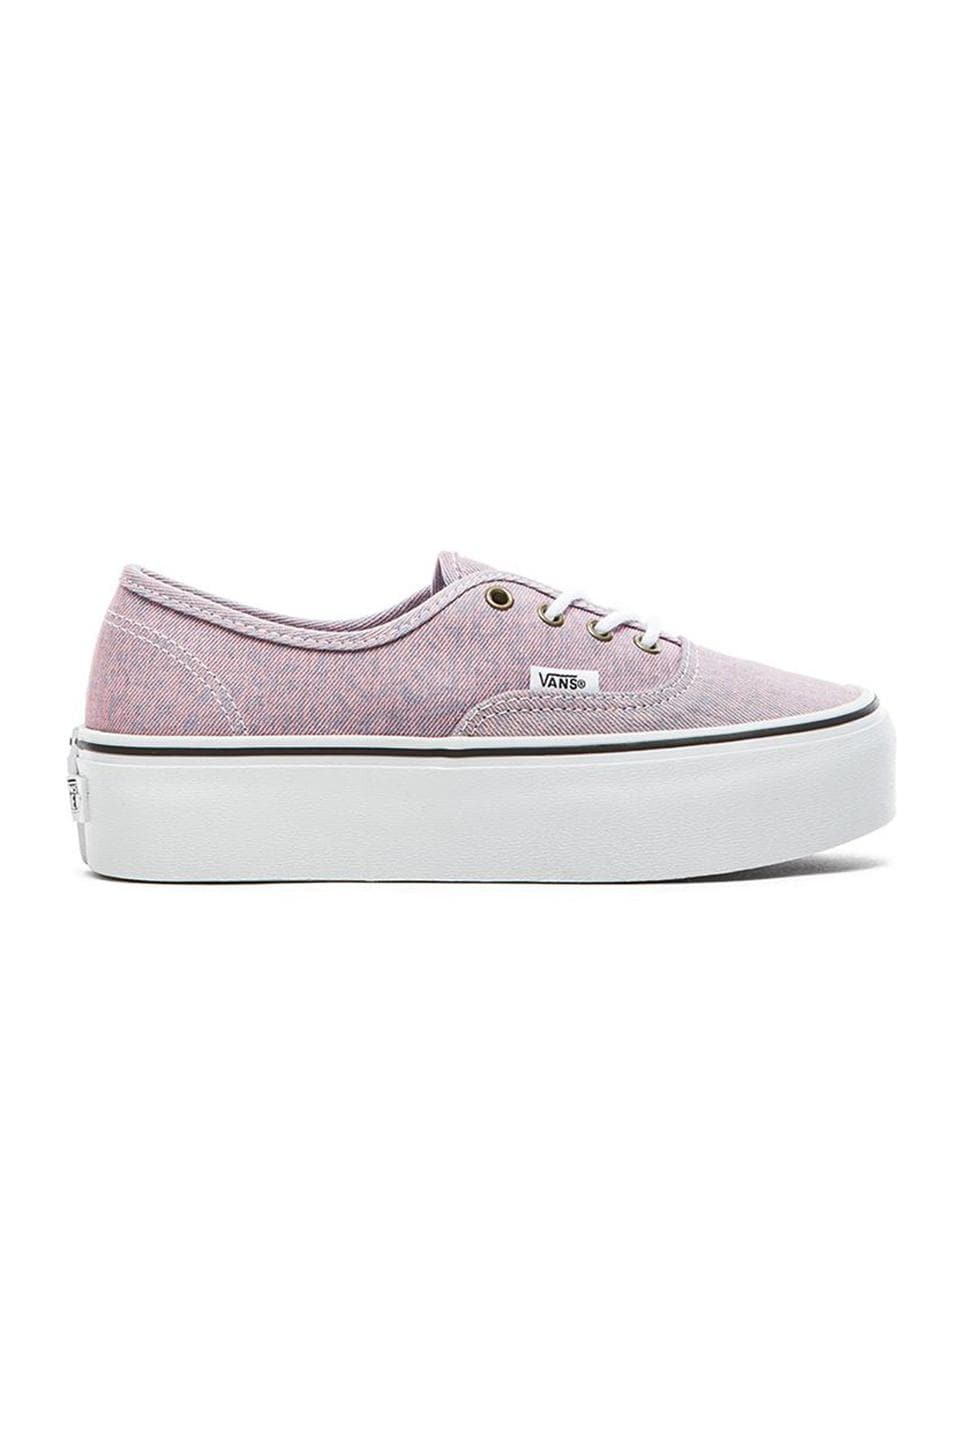 Vans Authentic Washed Denim Platform Sneaker in Pink